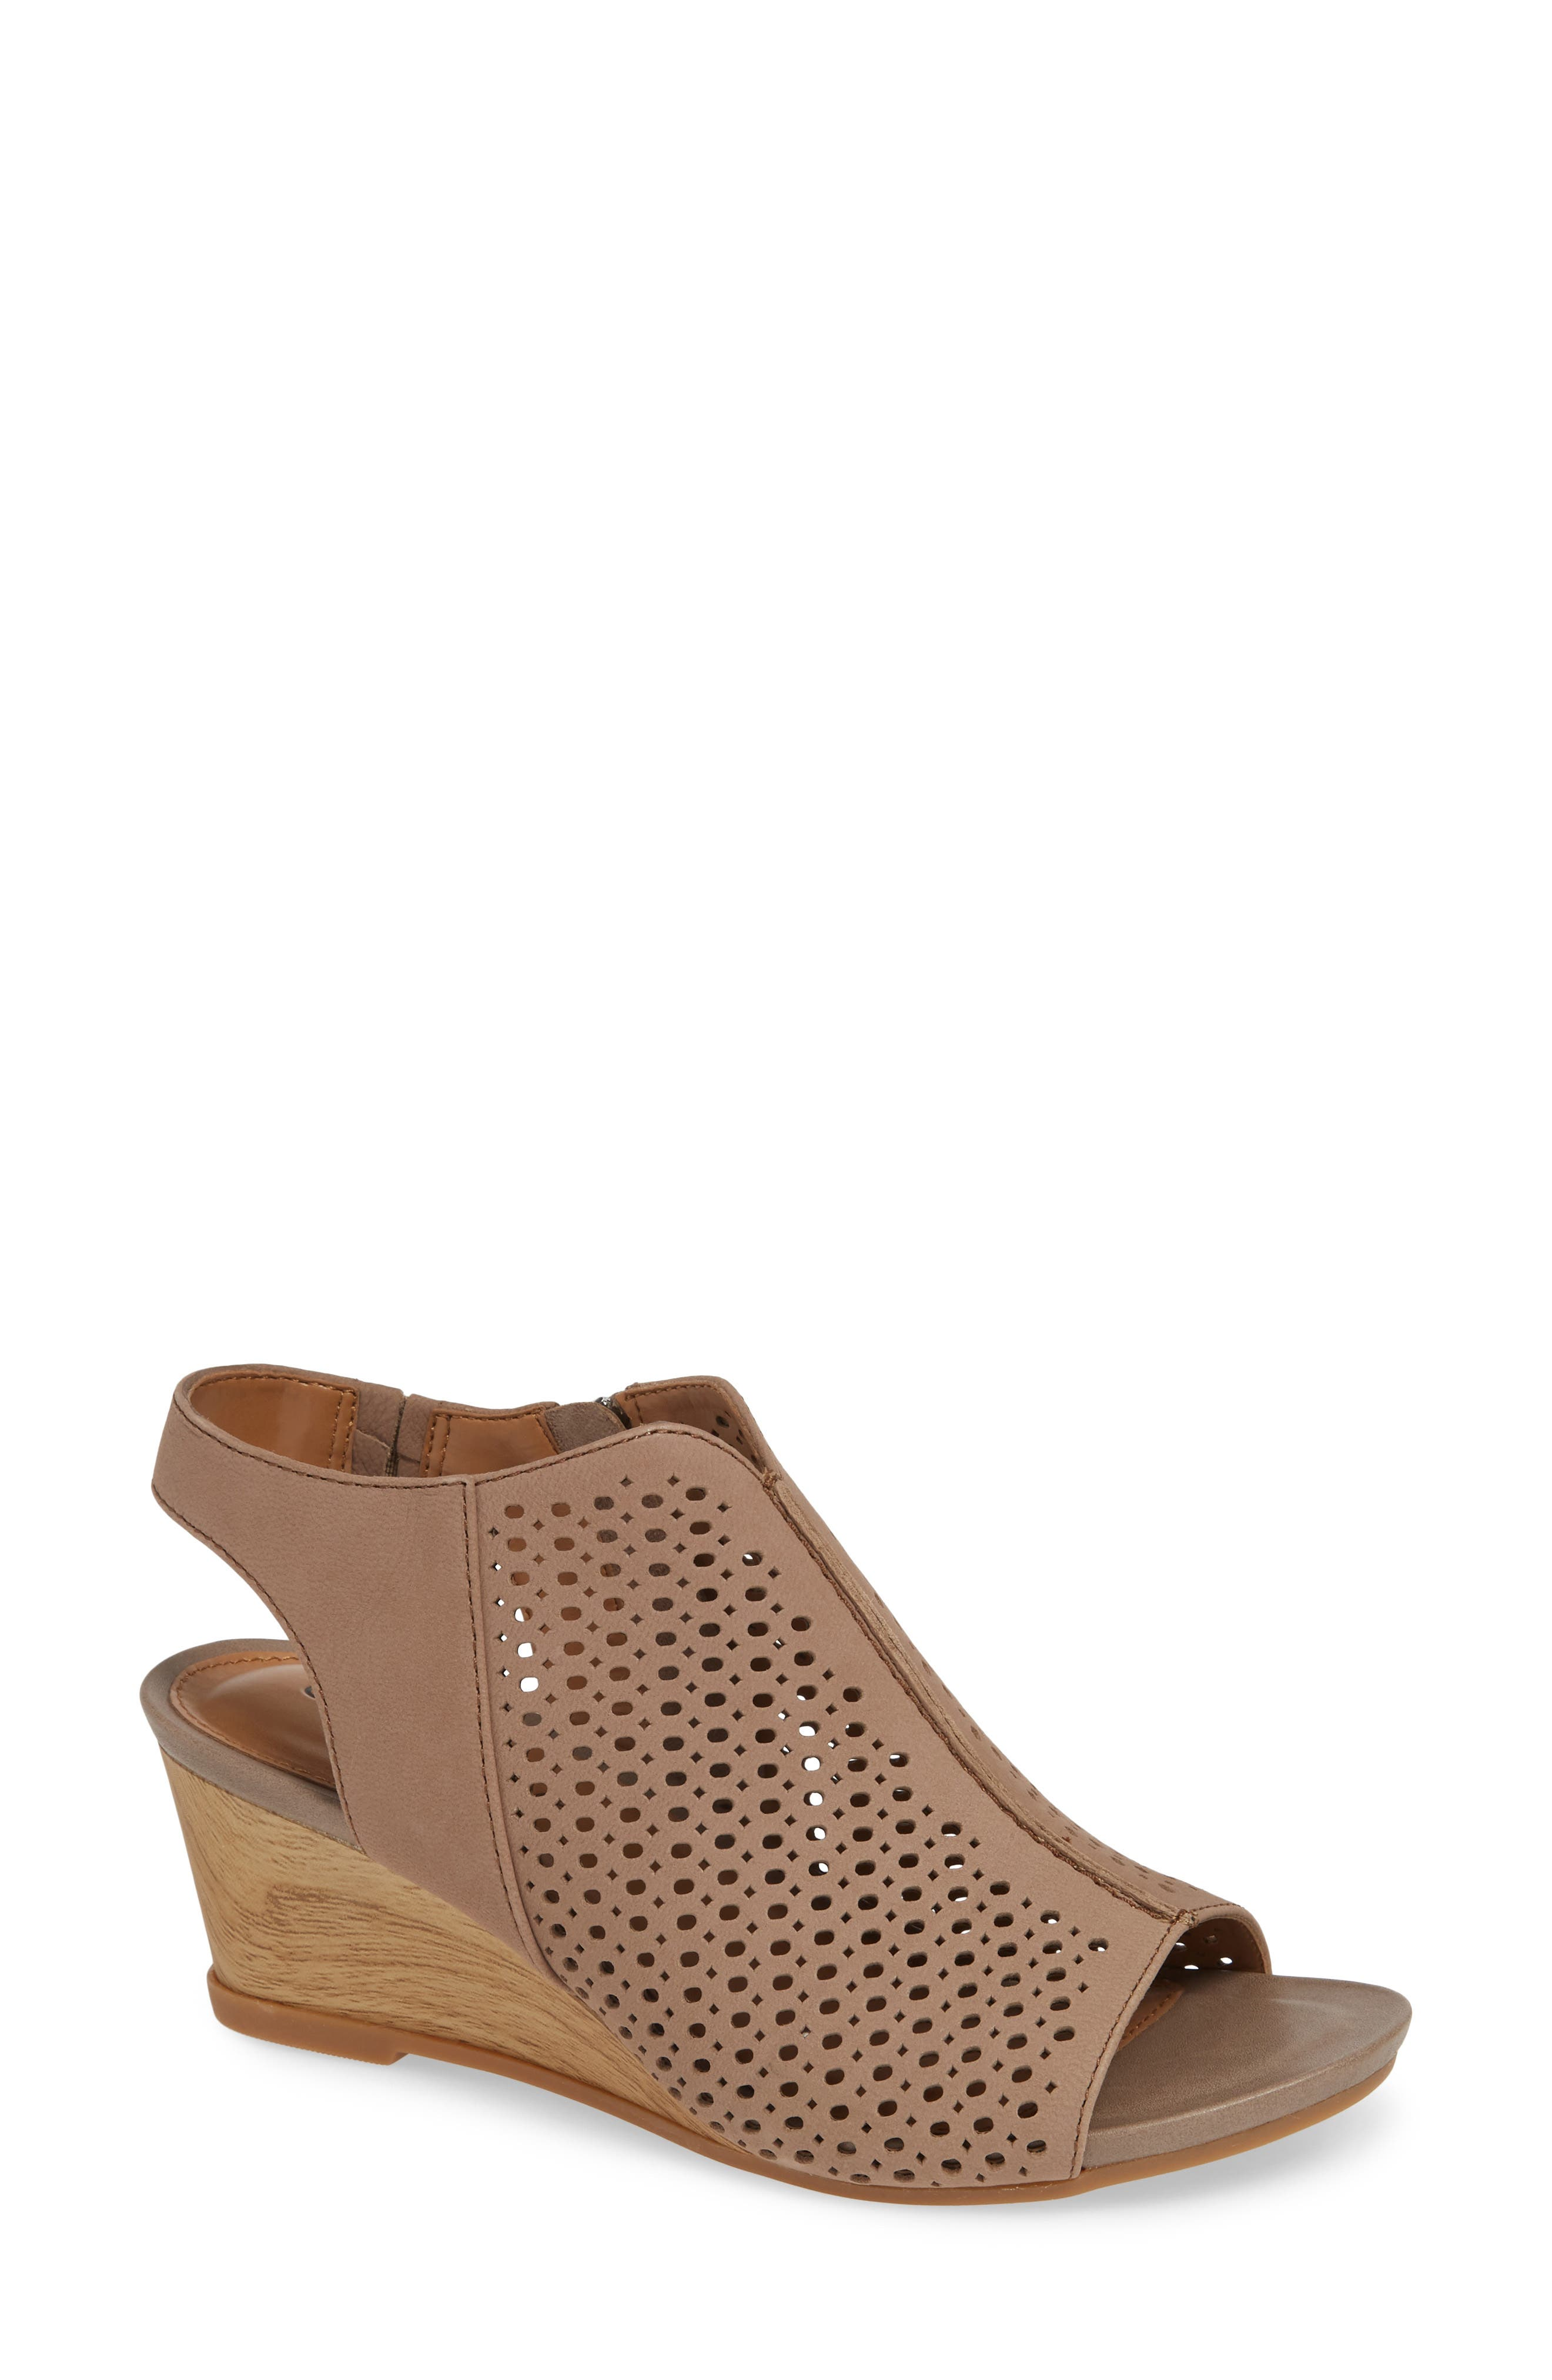 A contemporary perforated upper lets cool breezes in while you stride under the sun wearing these pillowy-soft sandals with a lightweight wood-textured wedge. Style Name: Comfortiva Skylyn Wedge Sandal (Women). Style Number: 5759380. Available in stores.